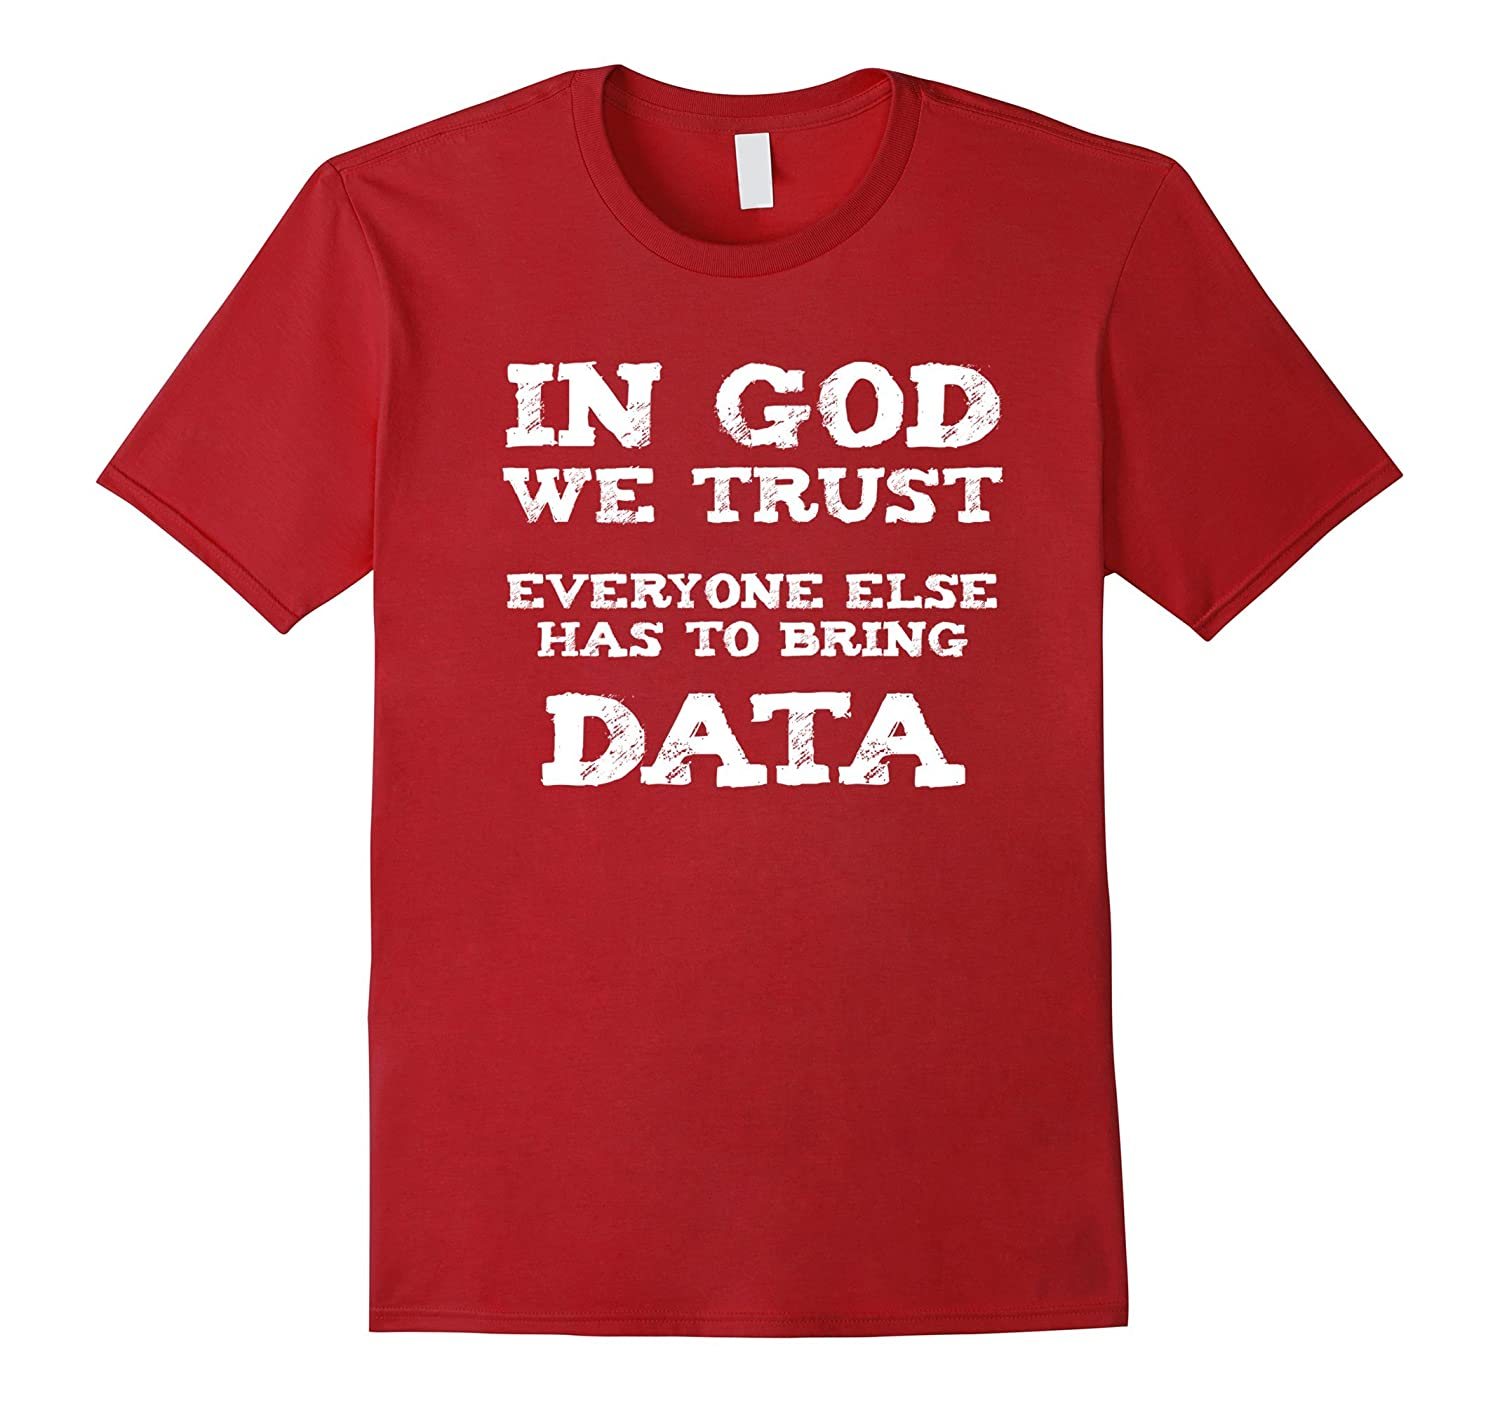 In God We Trust Everyone Else has to bring Data-Vaci